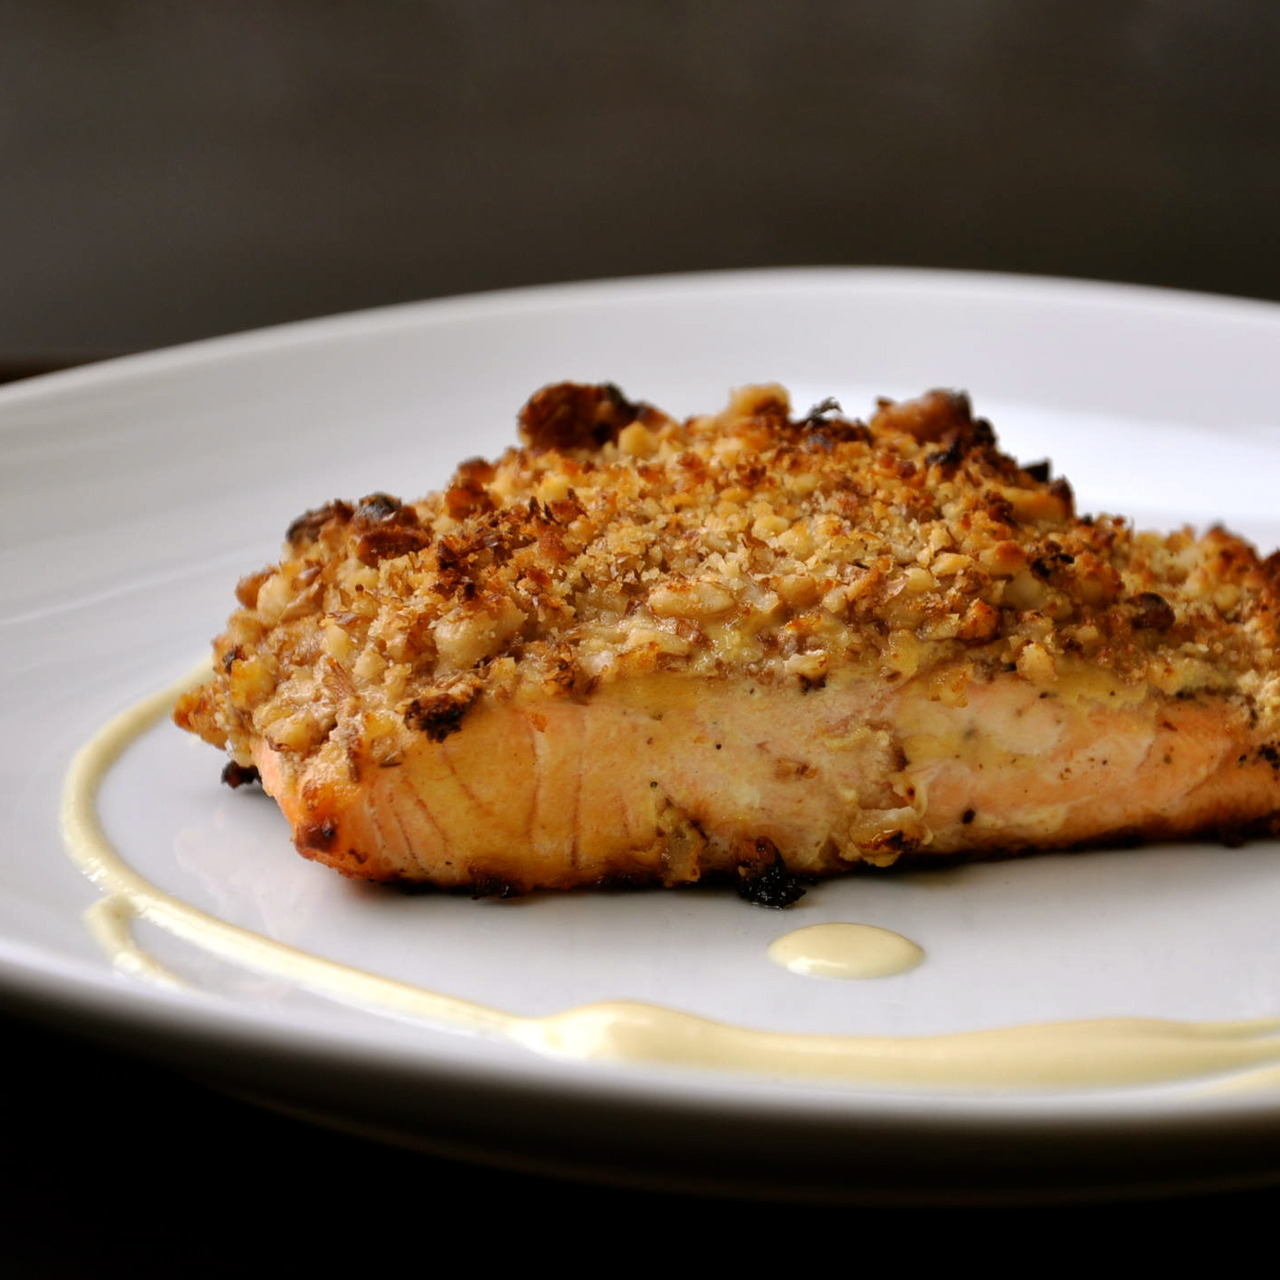 FoodShot #36: Salmon with walnut crust Target: Lose Weight Preparation time: 25 minutes Serving: 431 g Calories: 423  Protein: 26 g Fat: 15,8 g Carbohydrates: 44,9 g Get The Recipe Visit Daybite.com to get the right portion size tailored to you.